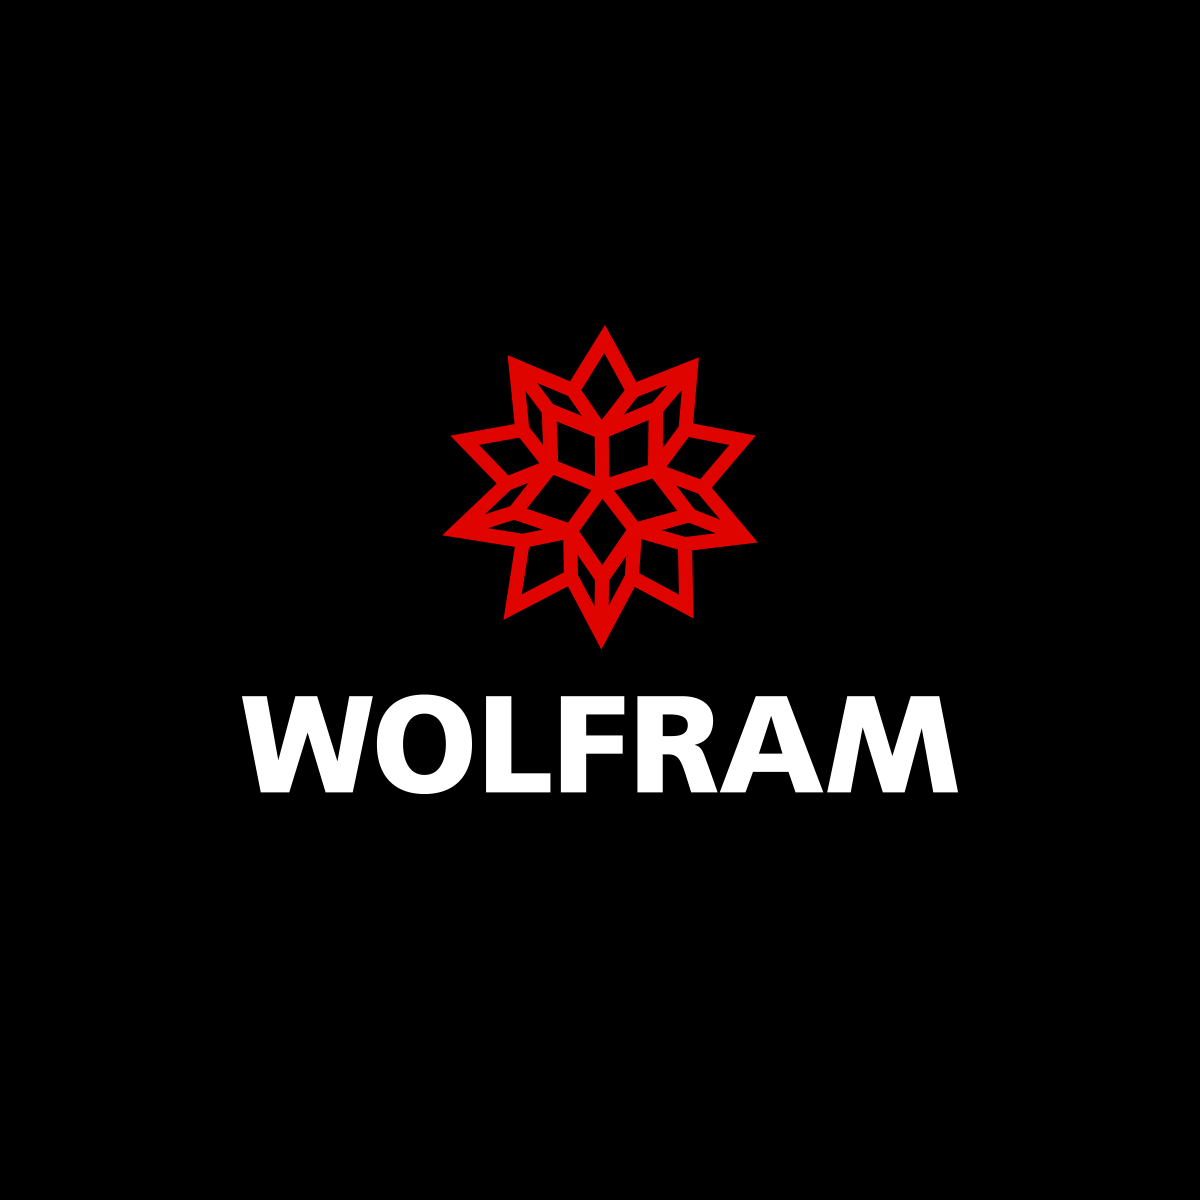 wolfram upcoming worldwide events seminars conferences